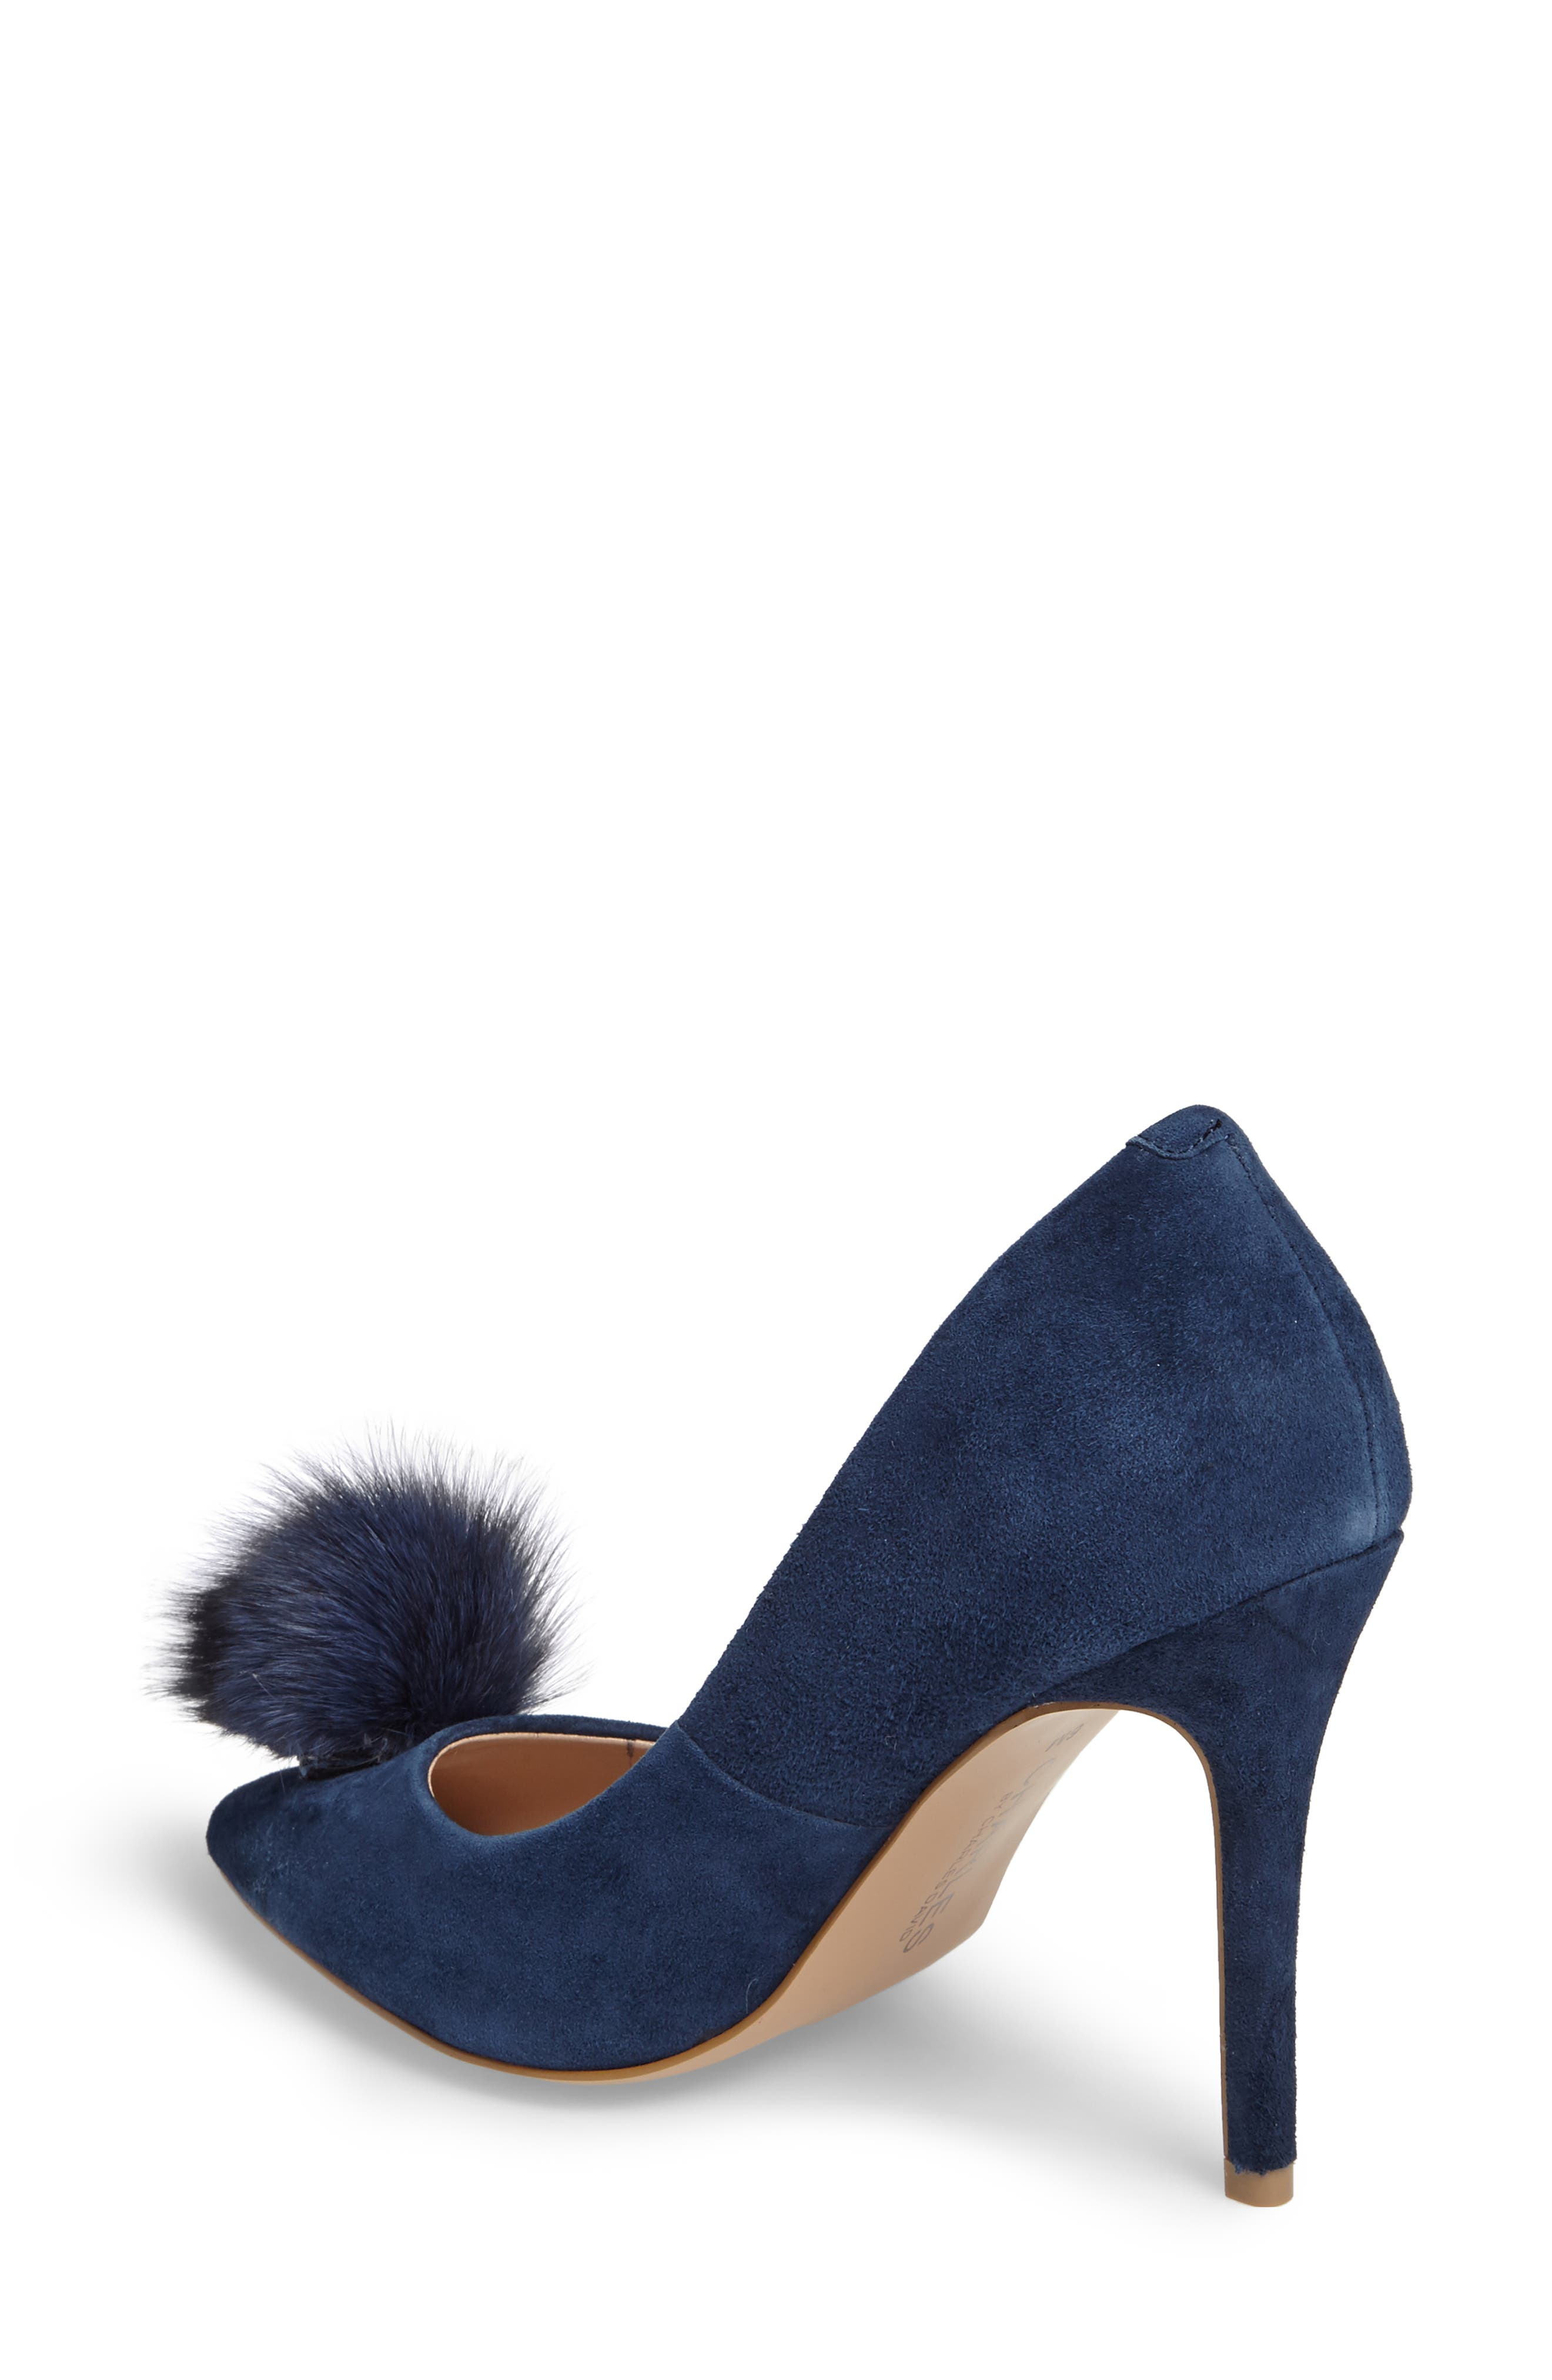 Pixie Pump with Genuine Fox Fur Pom,                             Alternate thumbnail 2, color,                             Midnight Suede